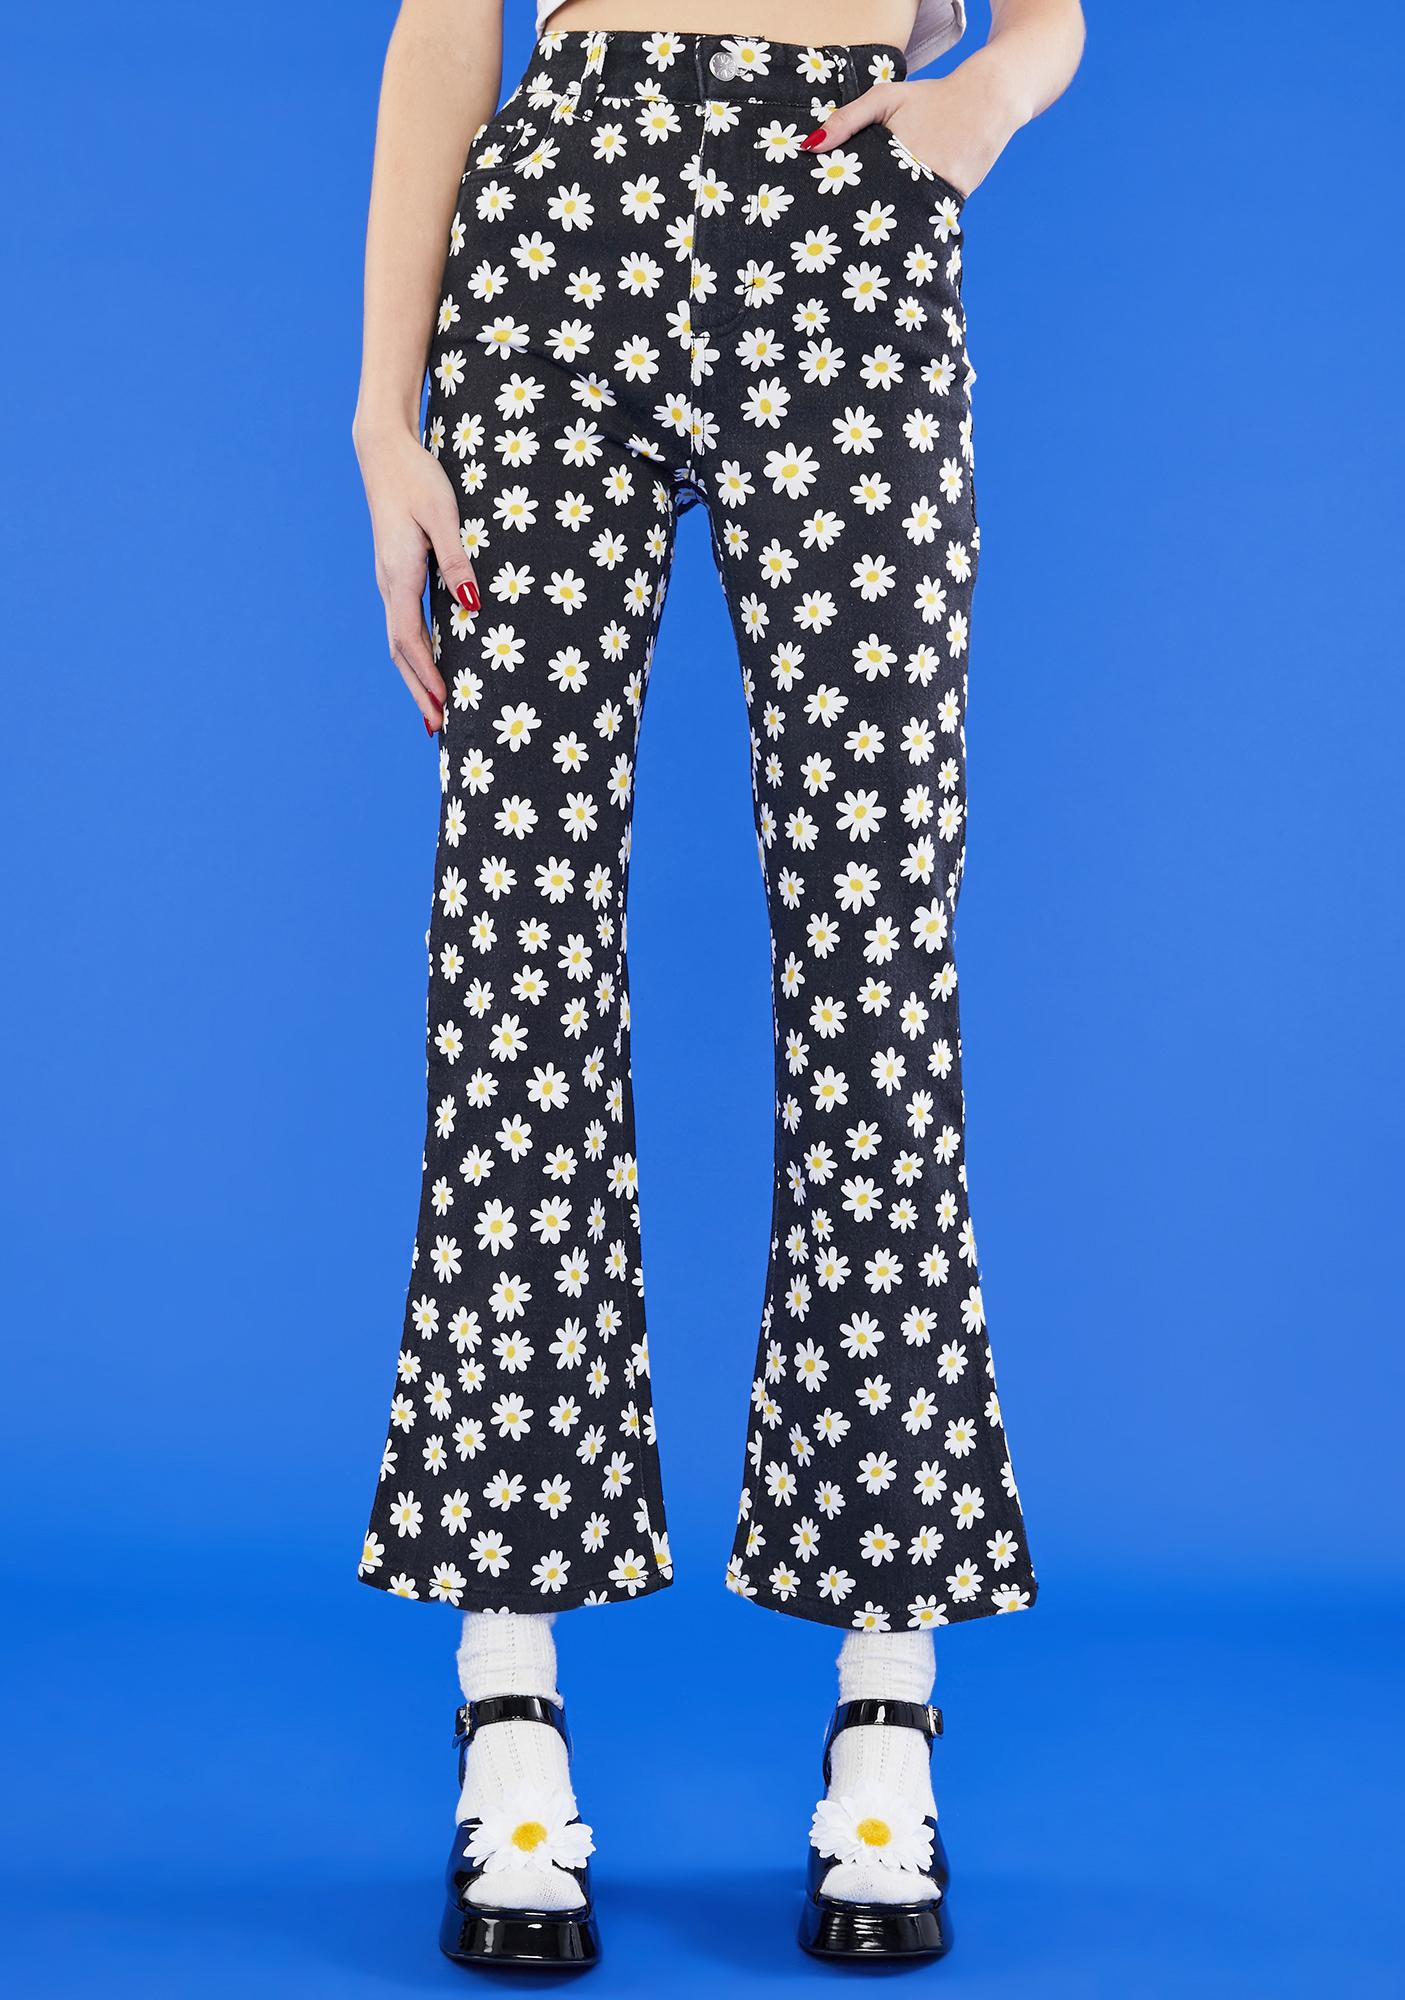 dELiA*s by Dolls Kill What's The Buzz Flare Jeans